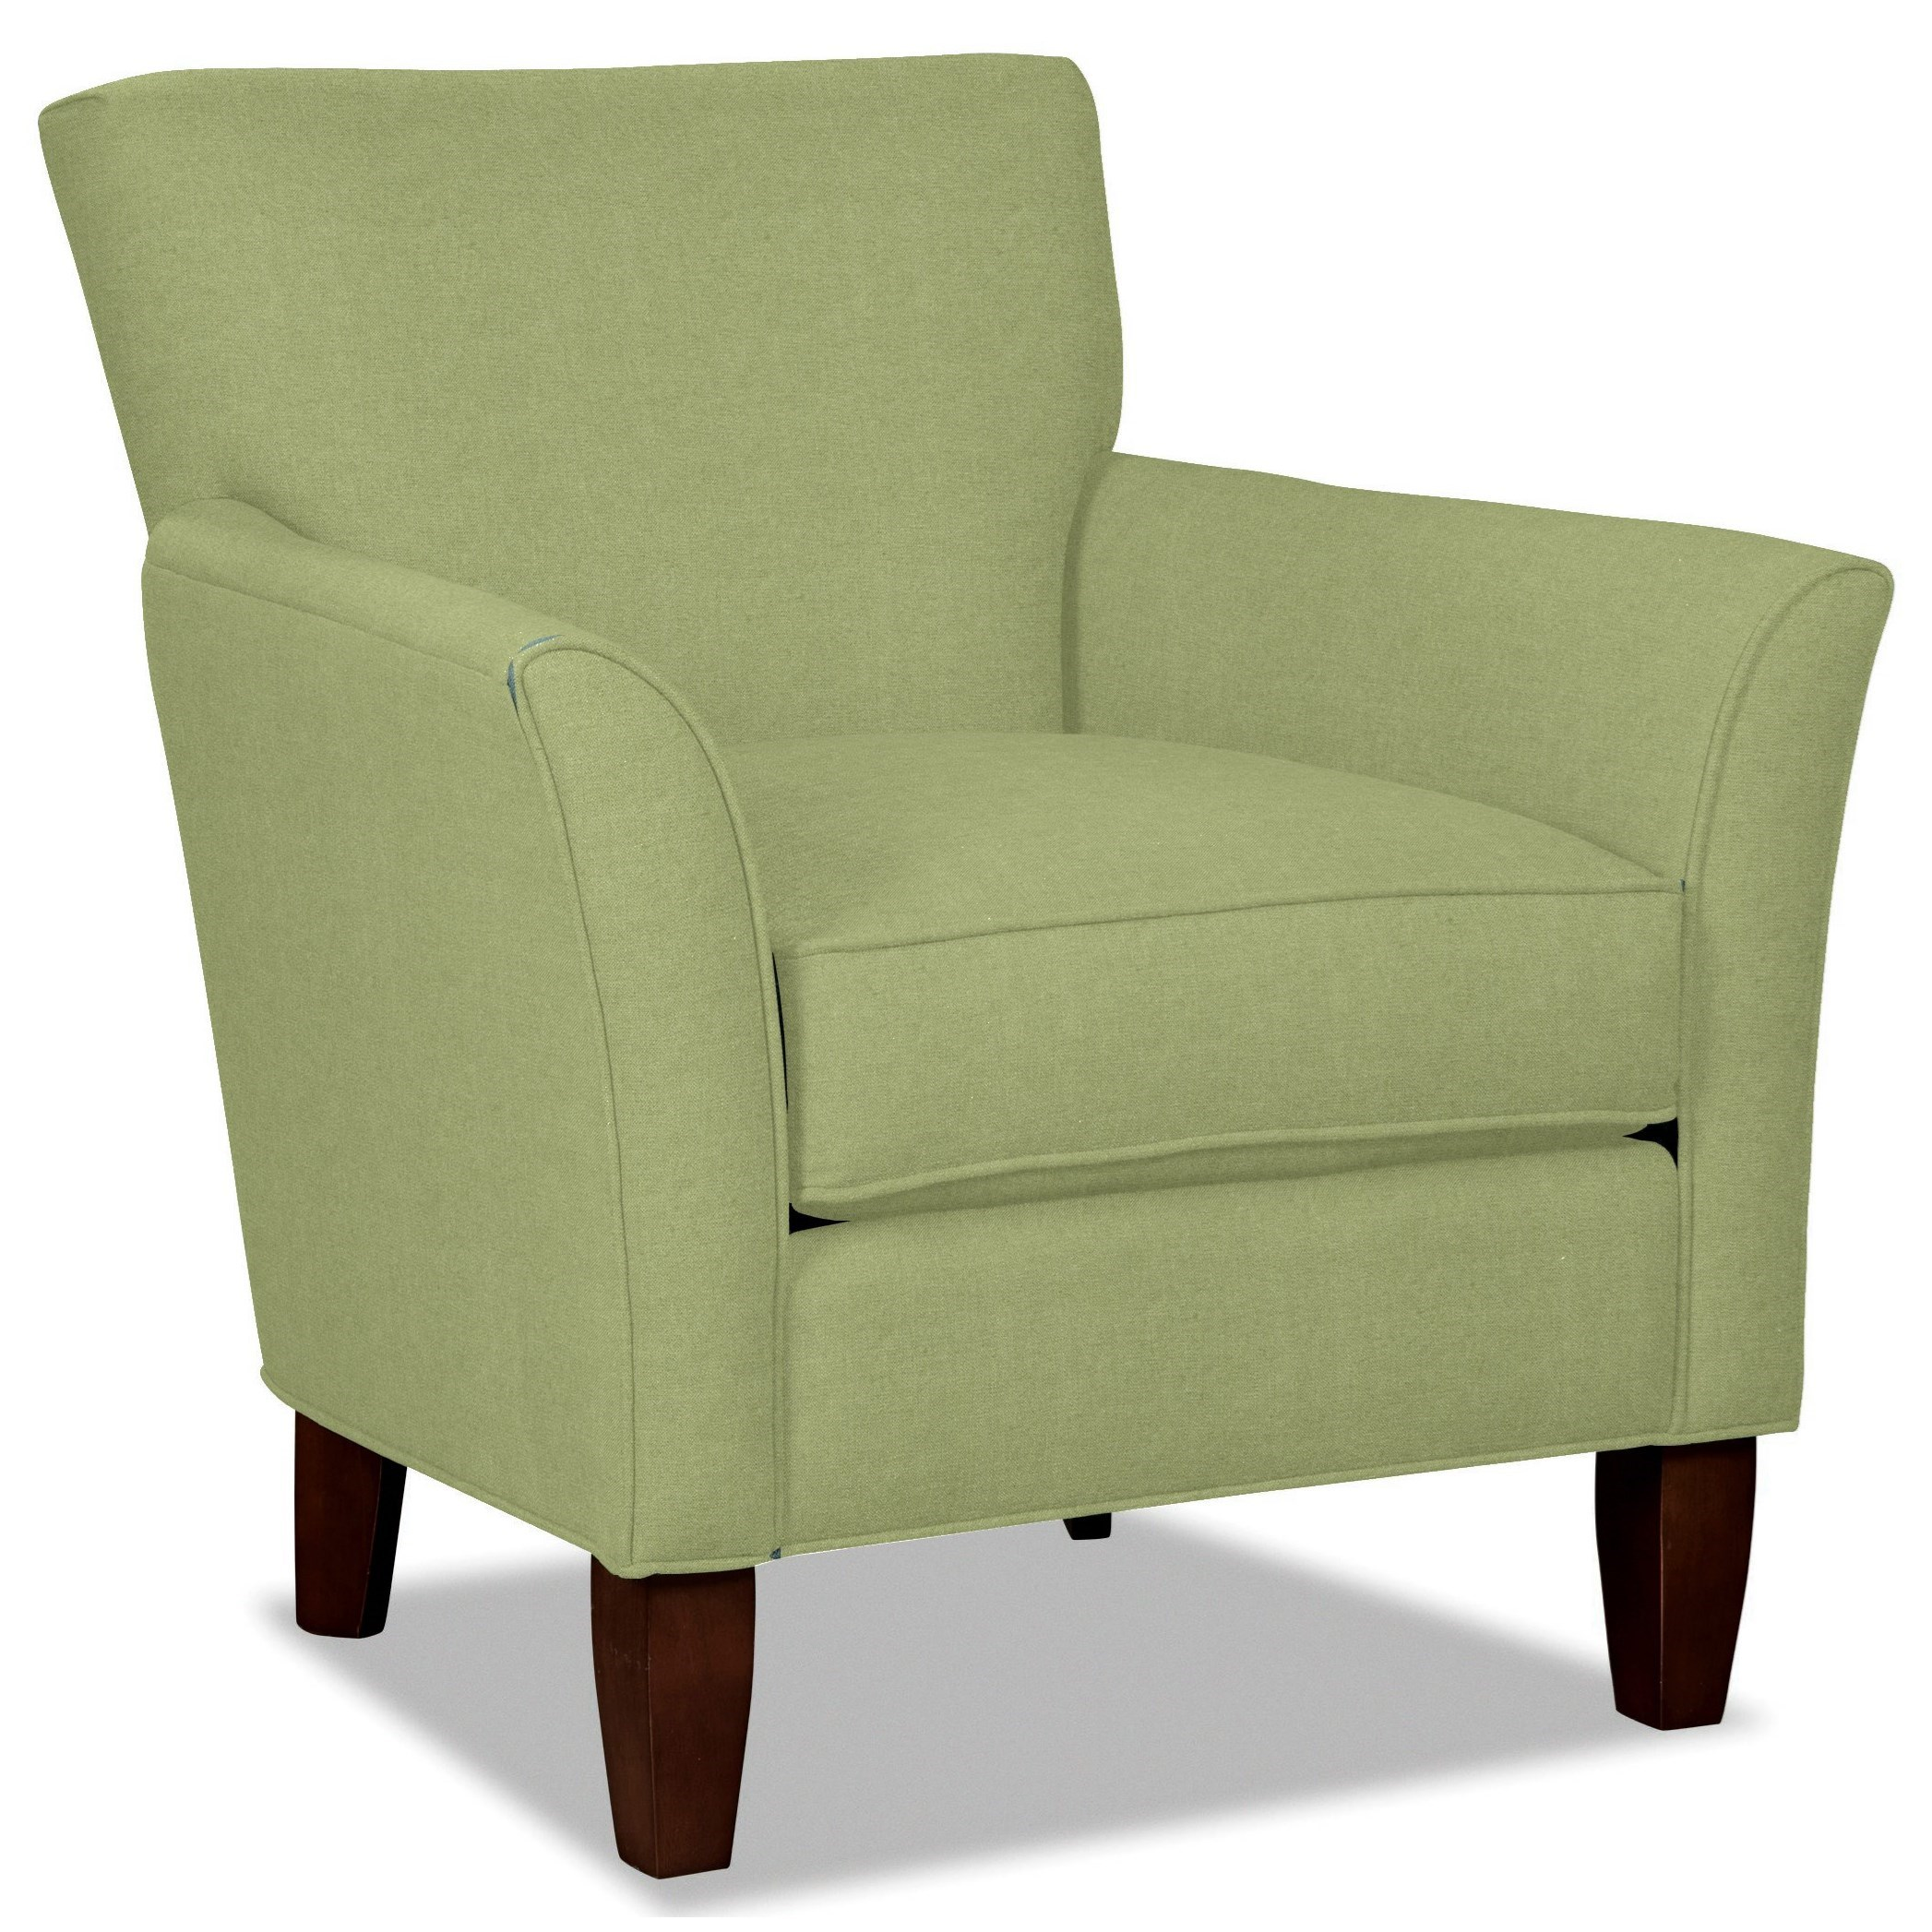 Craftmaster 060110 Accent Chair - Item Number: 060110-DERIVE-15